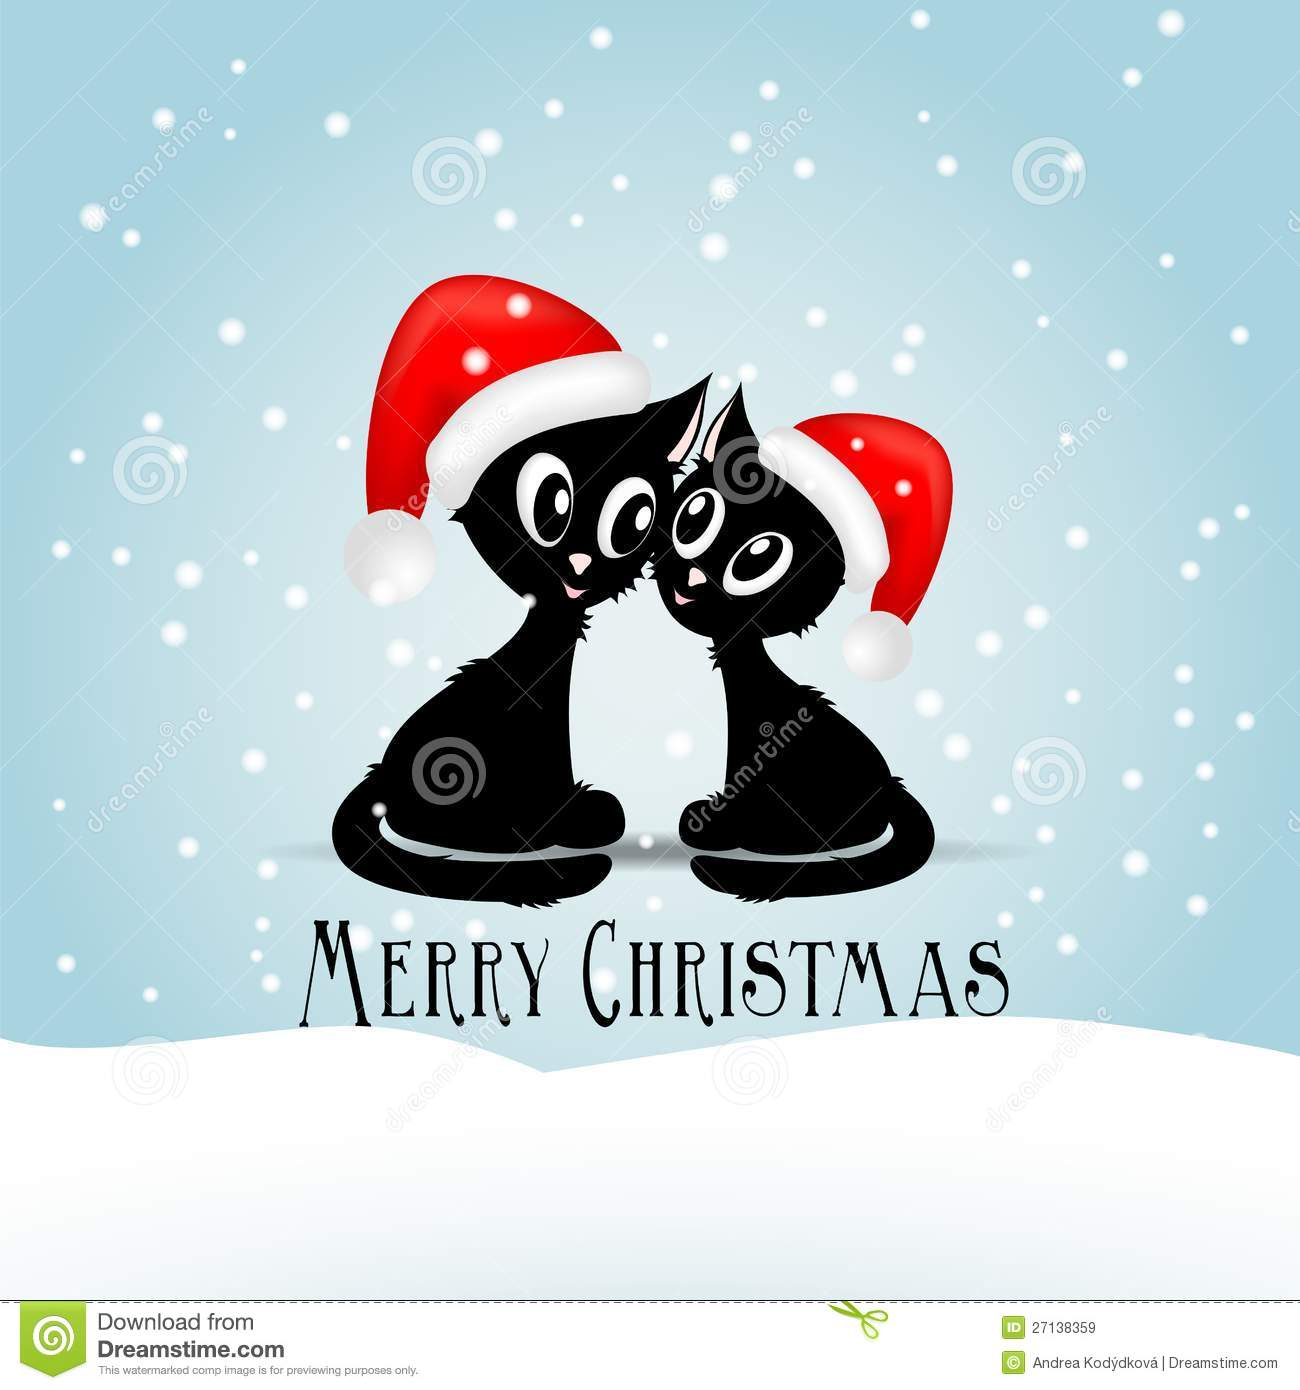 Snoopy Cute Wallpaper Two Cute Black Cats Vith Red Christmas Caps Royalty Free